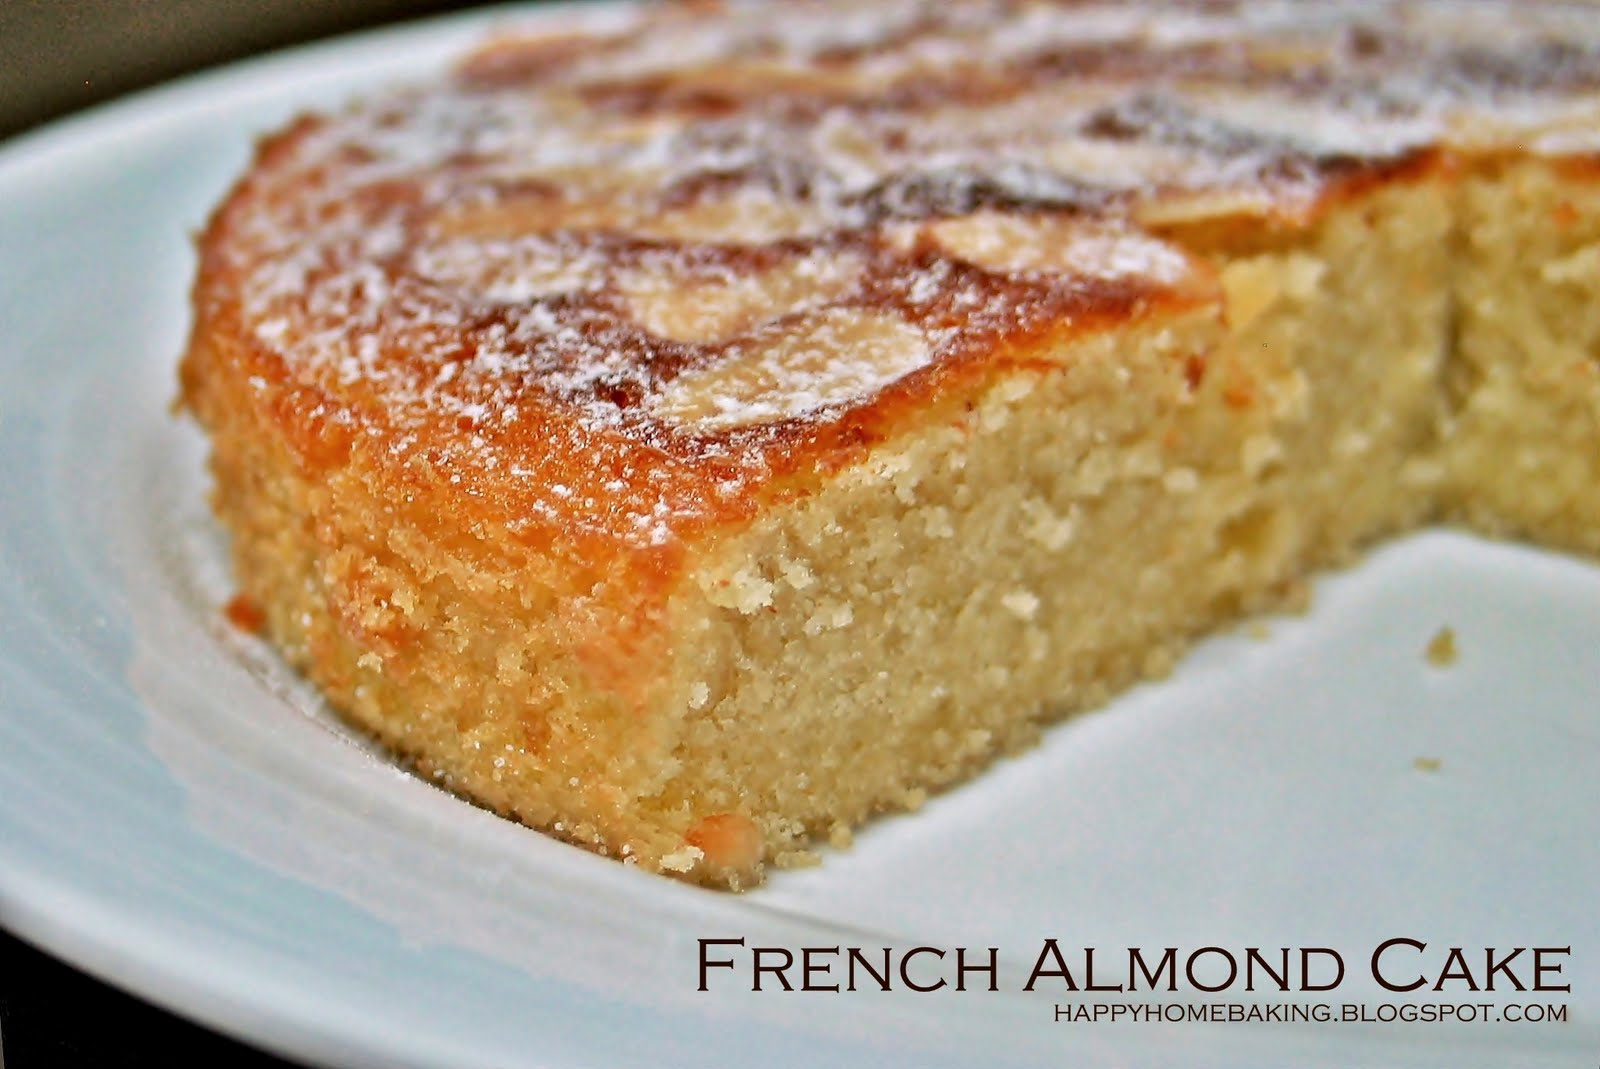 Happy home baking french almond cake for Easy basic cake recipes from scratch